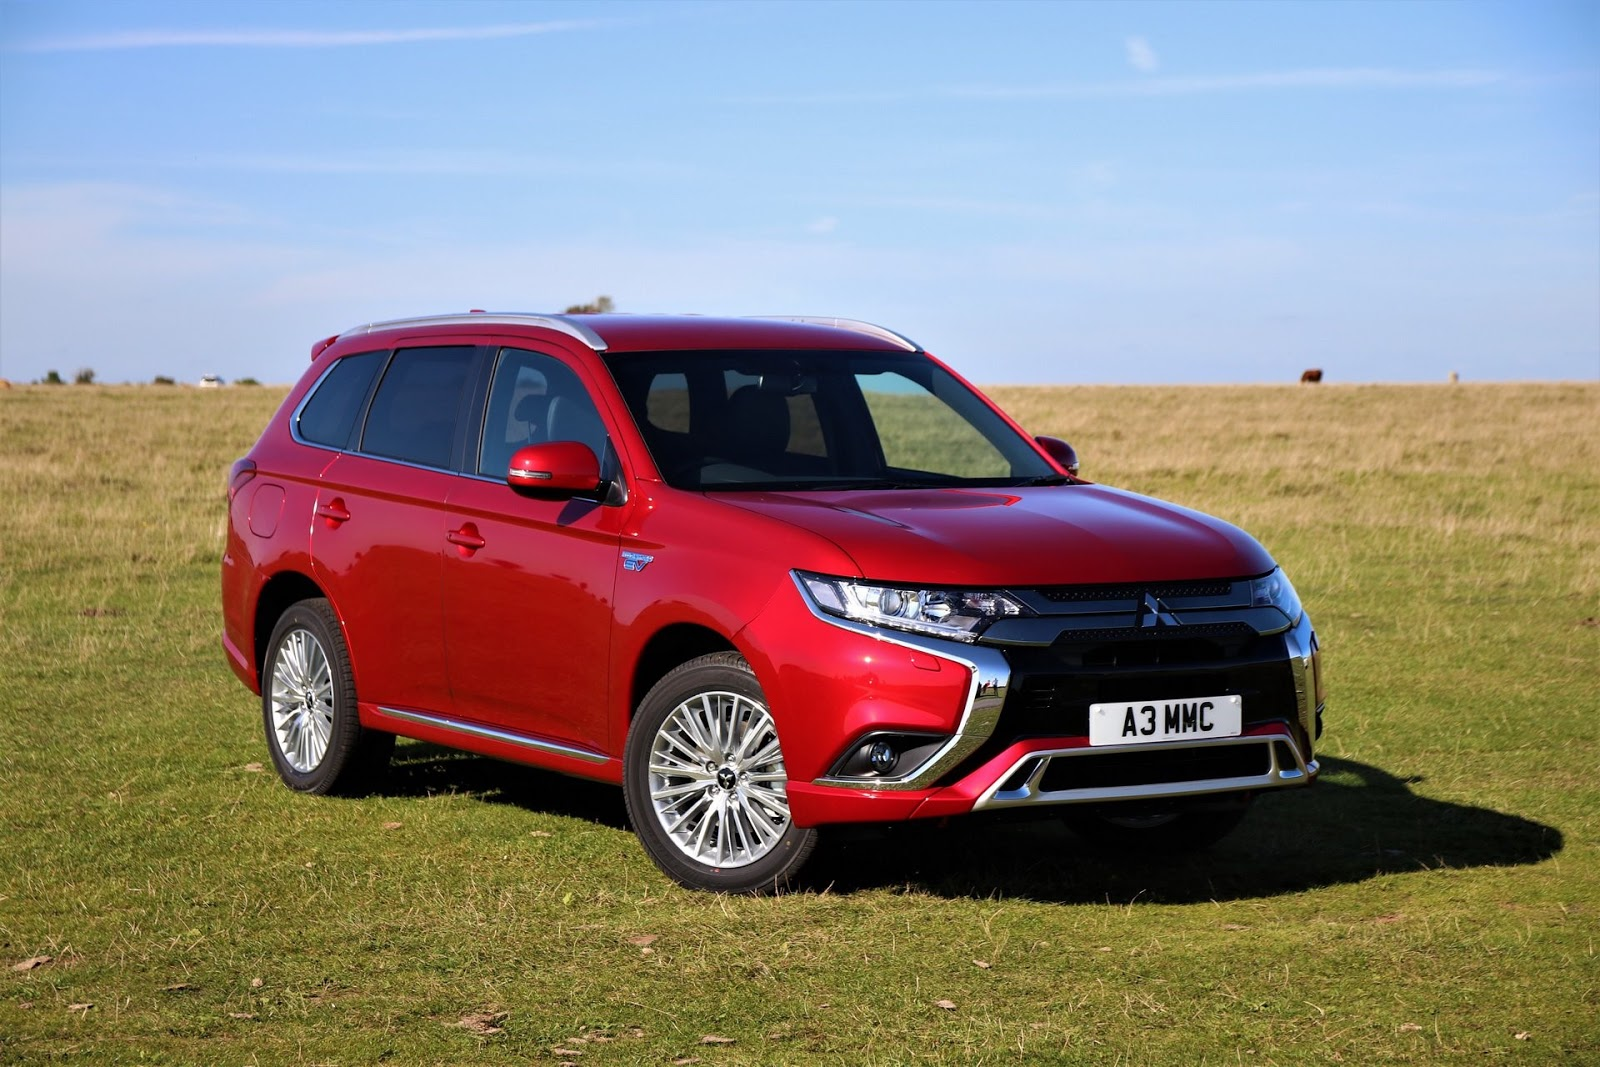 35 Gallery of 2020 Mitsubishi Outlander Phev Usa Redesign and Concept with 2020 Mitsubishi Outlander Phev Usa